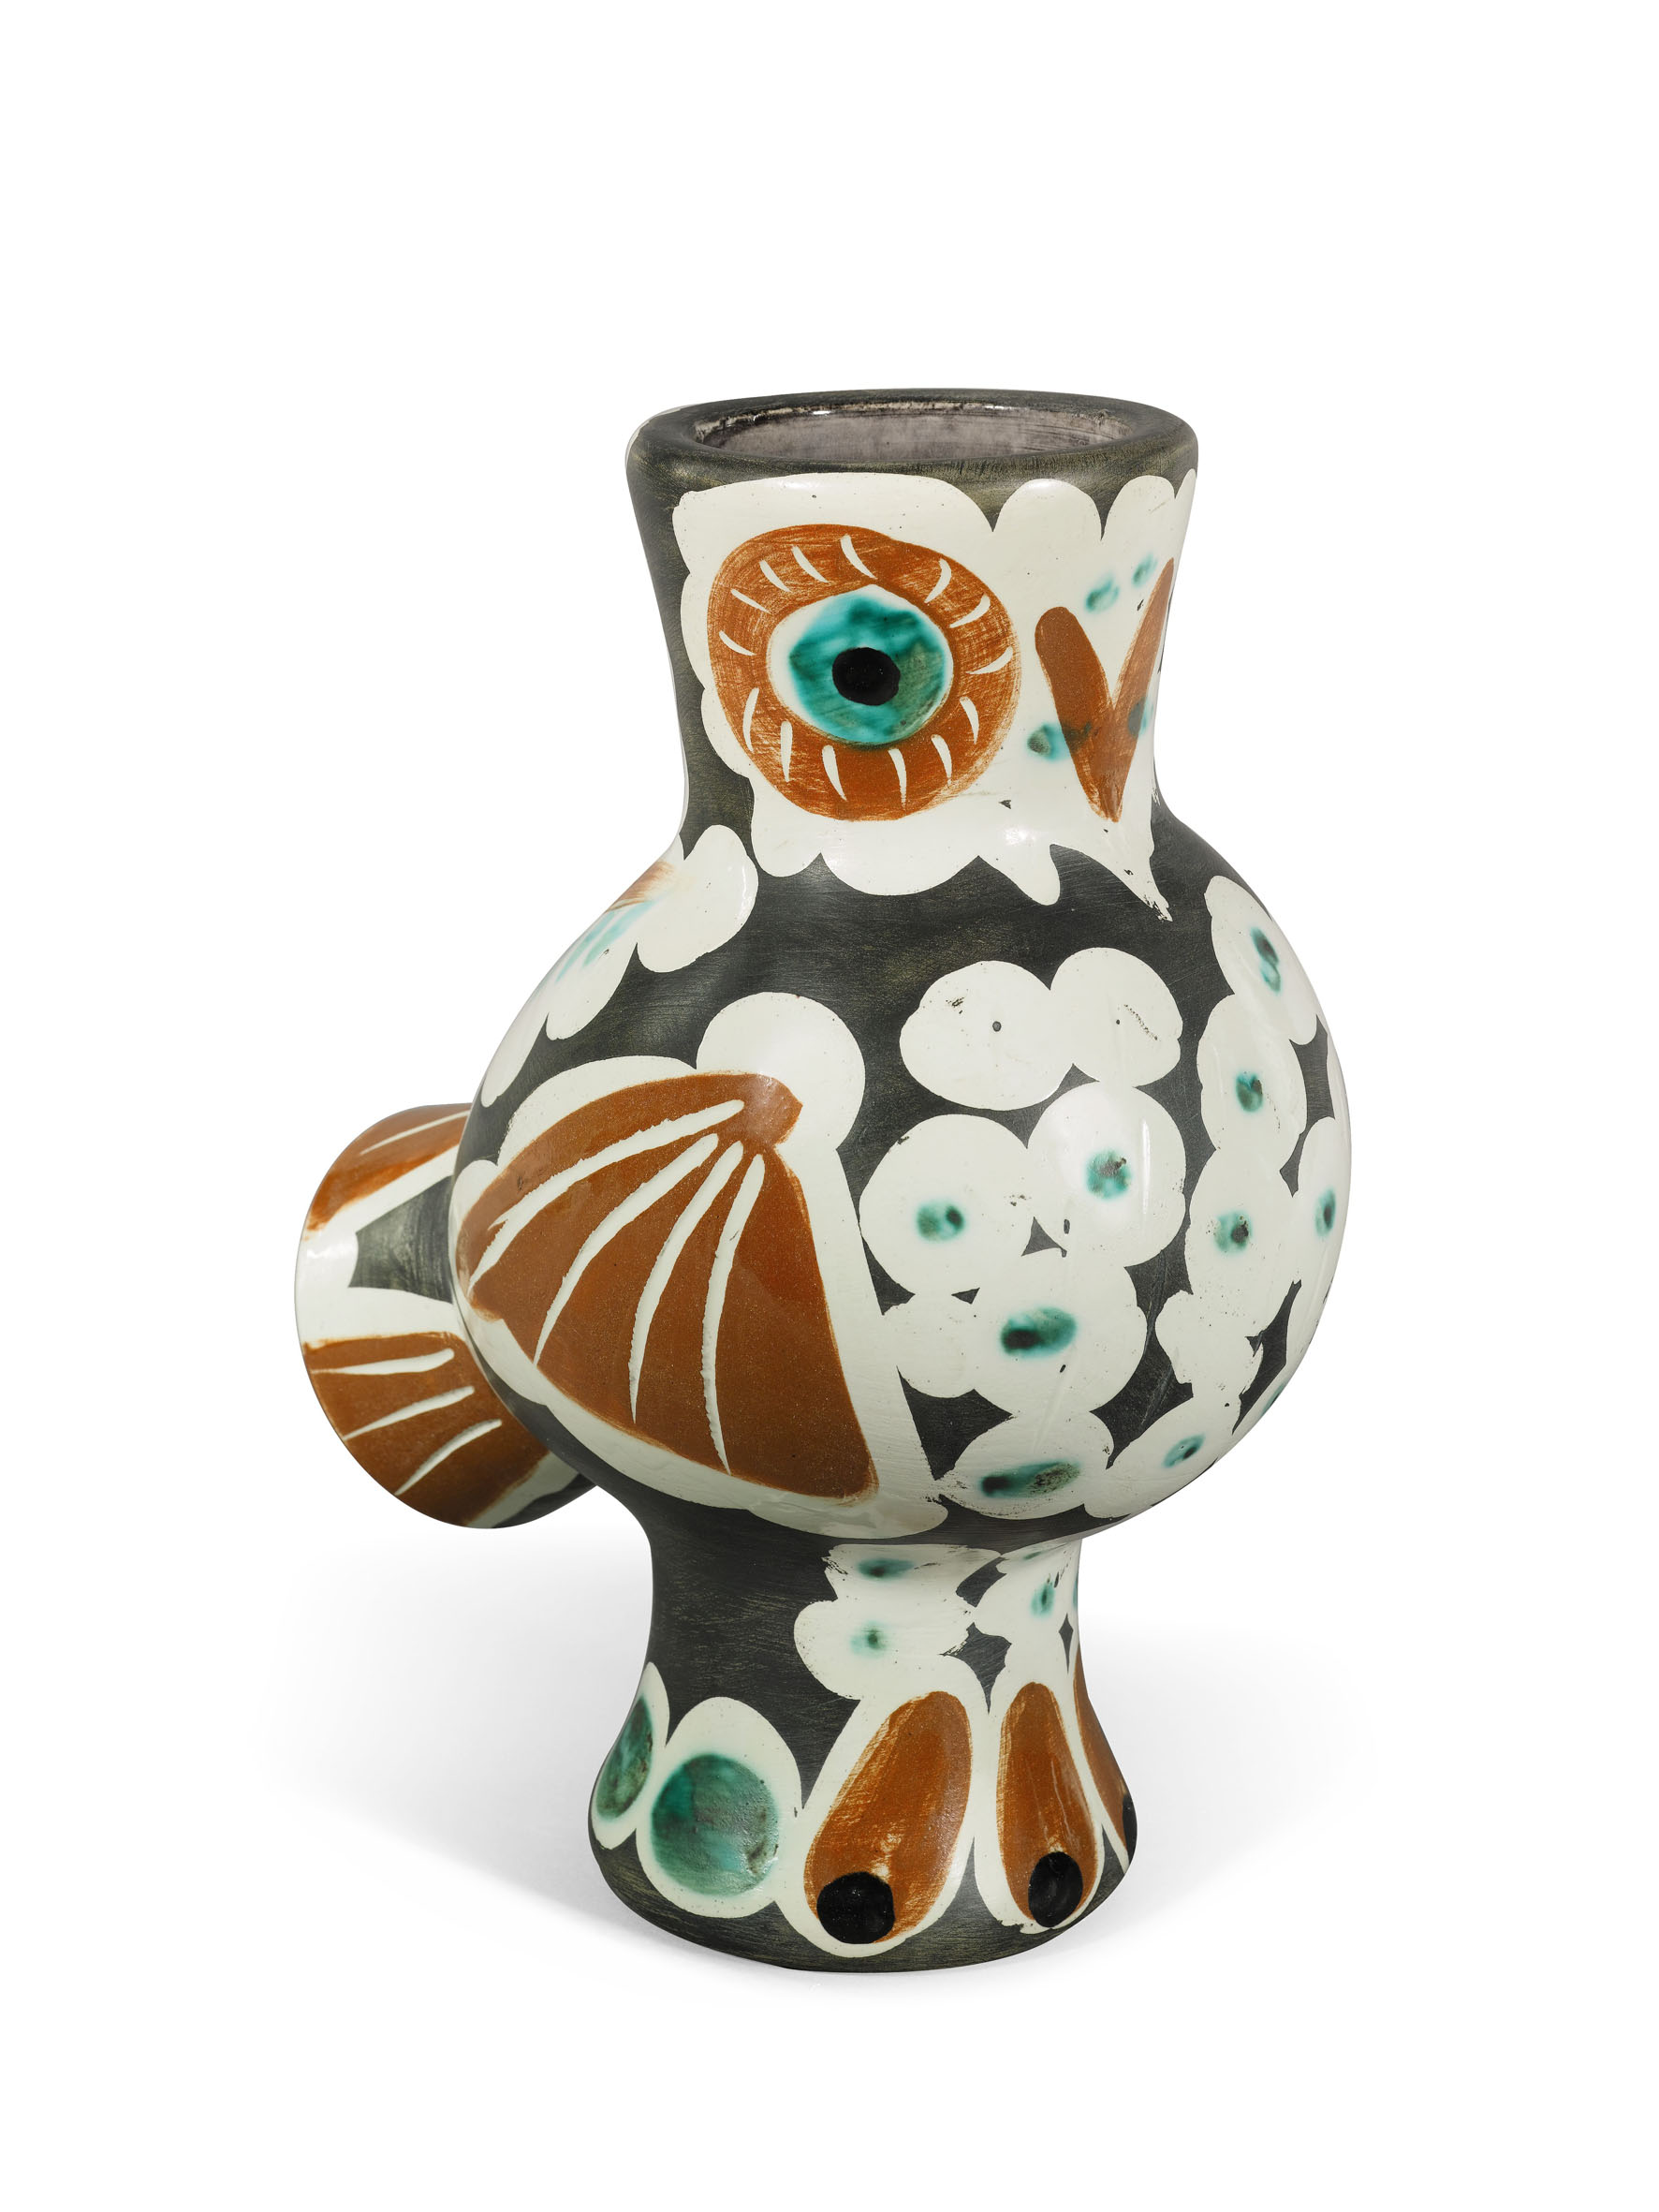 PICASSO'S CERAMICS AT SOTHEBY'S IN MARCH « antiquesandartireland.com